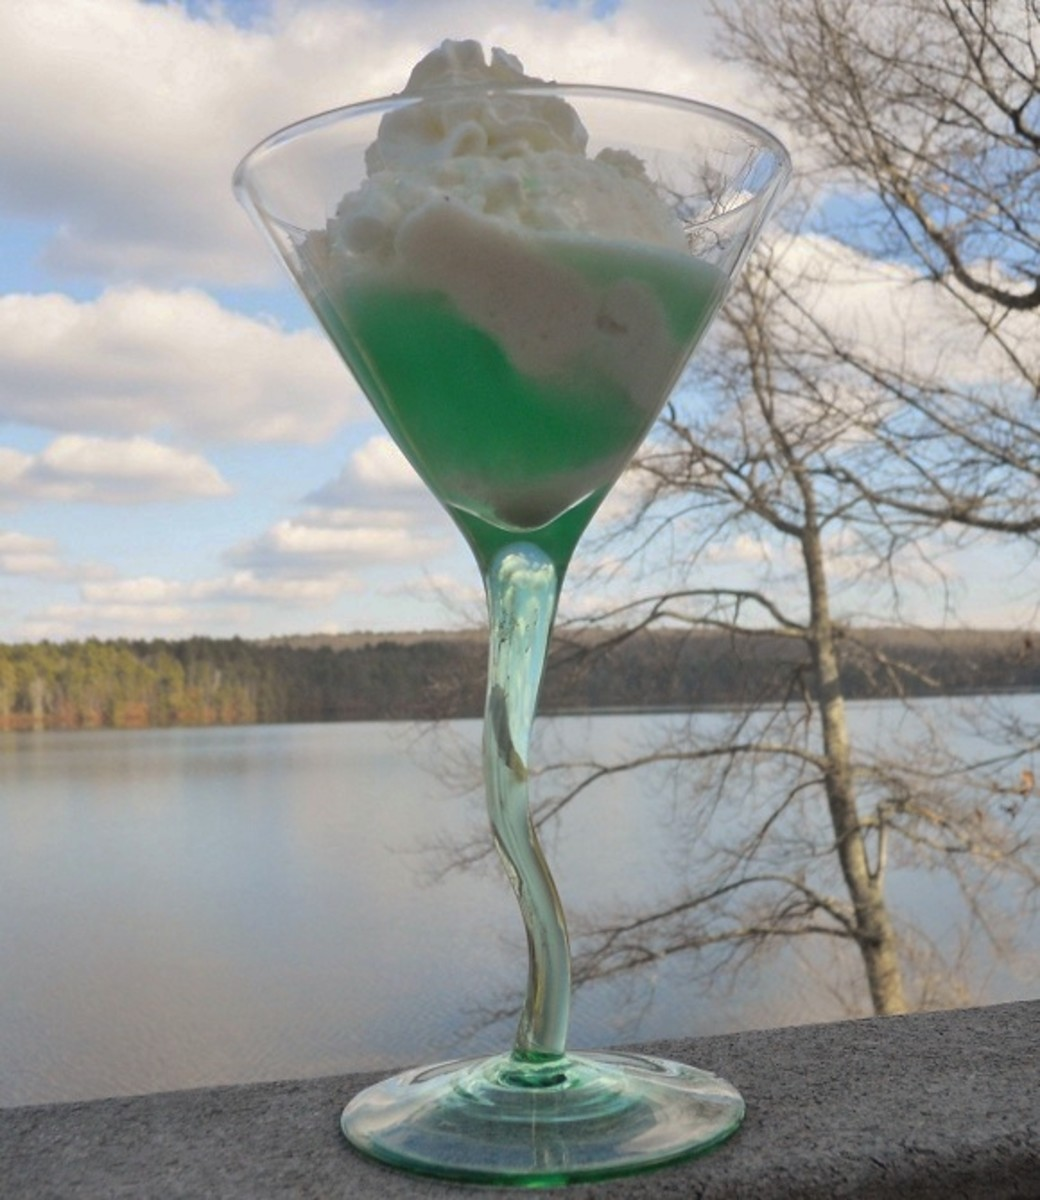 Creme de Menthe Over Ice Cream